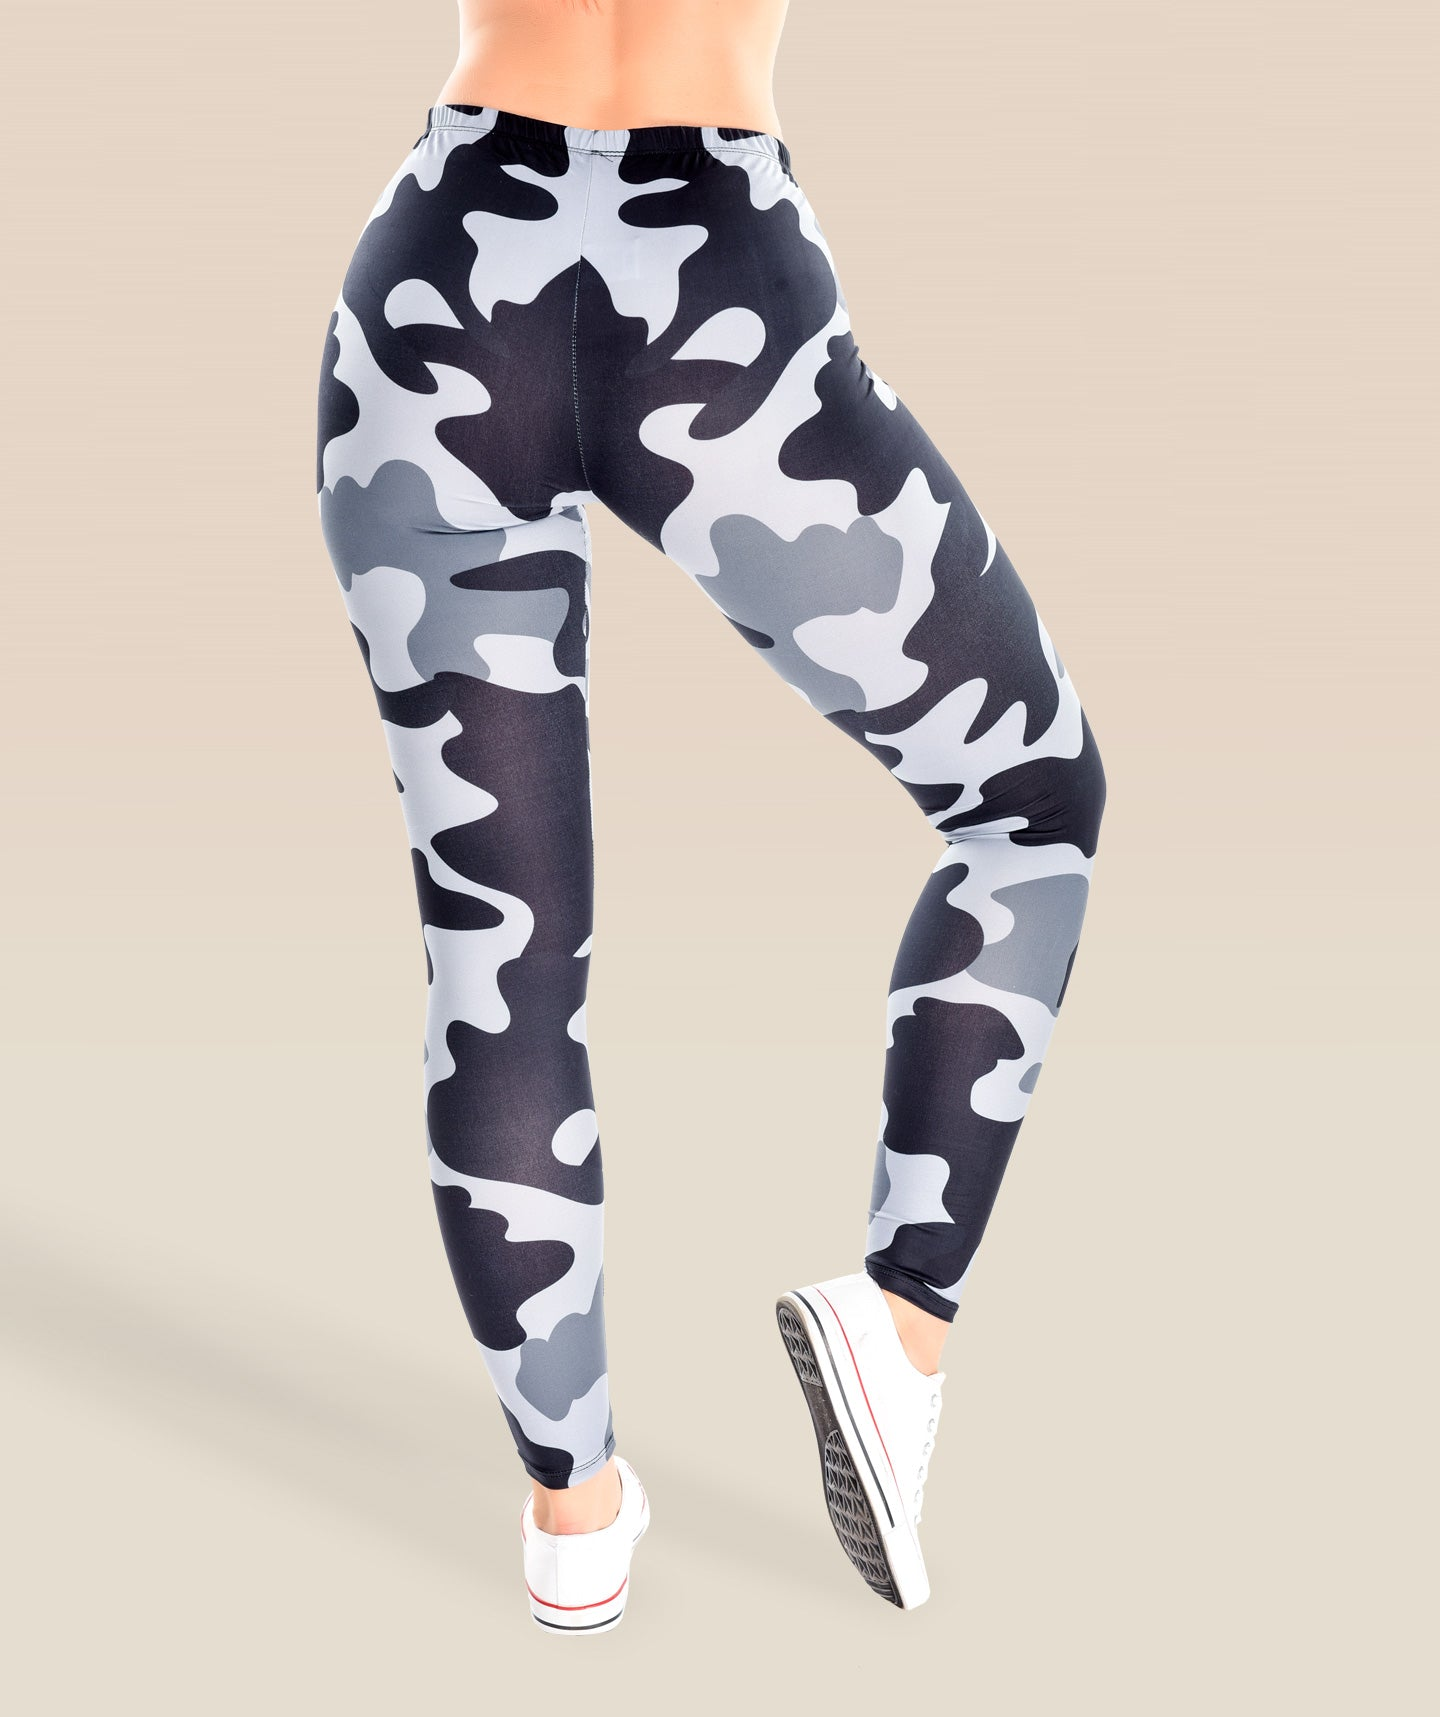 Camo Urban Grey Leggings